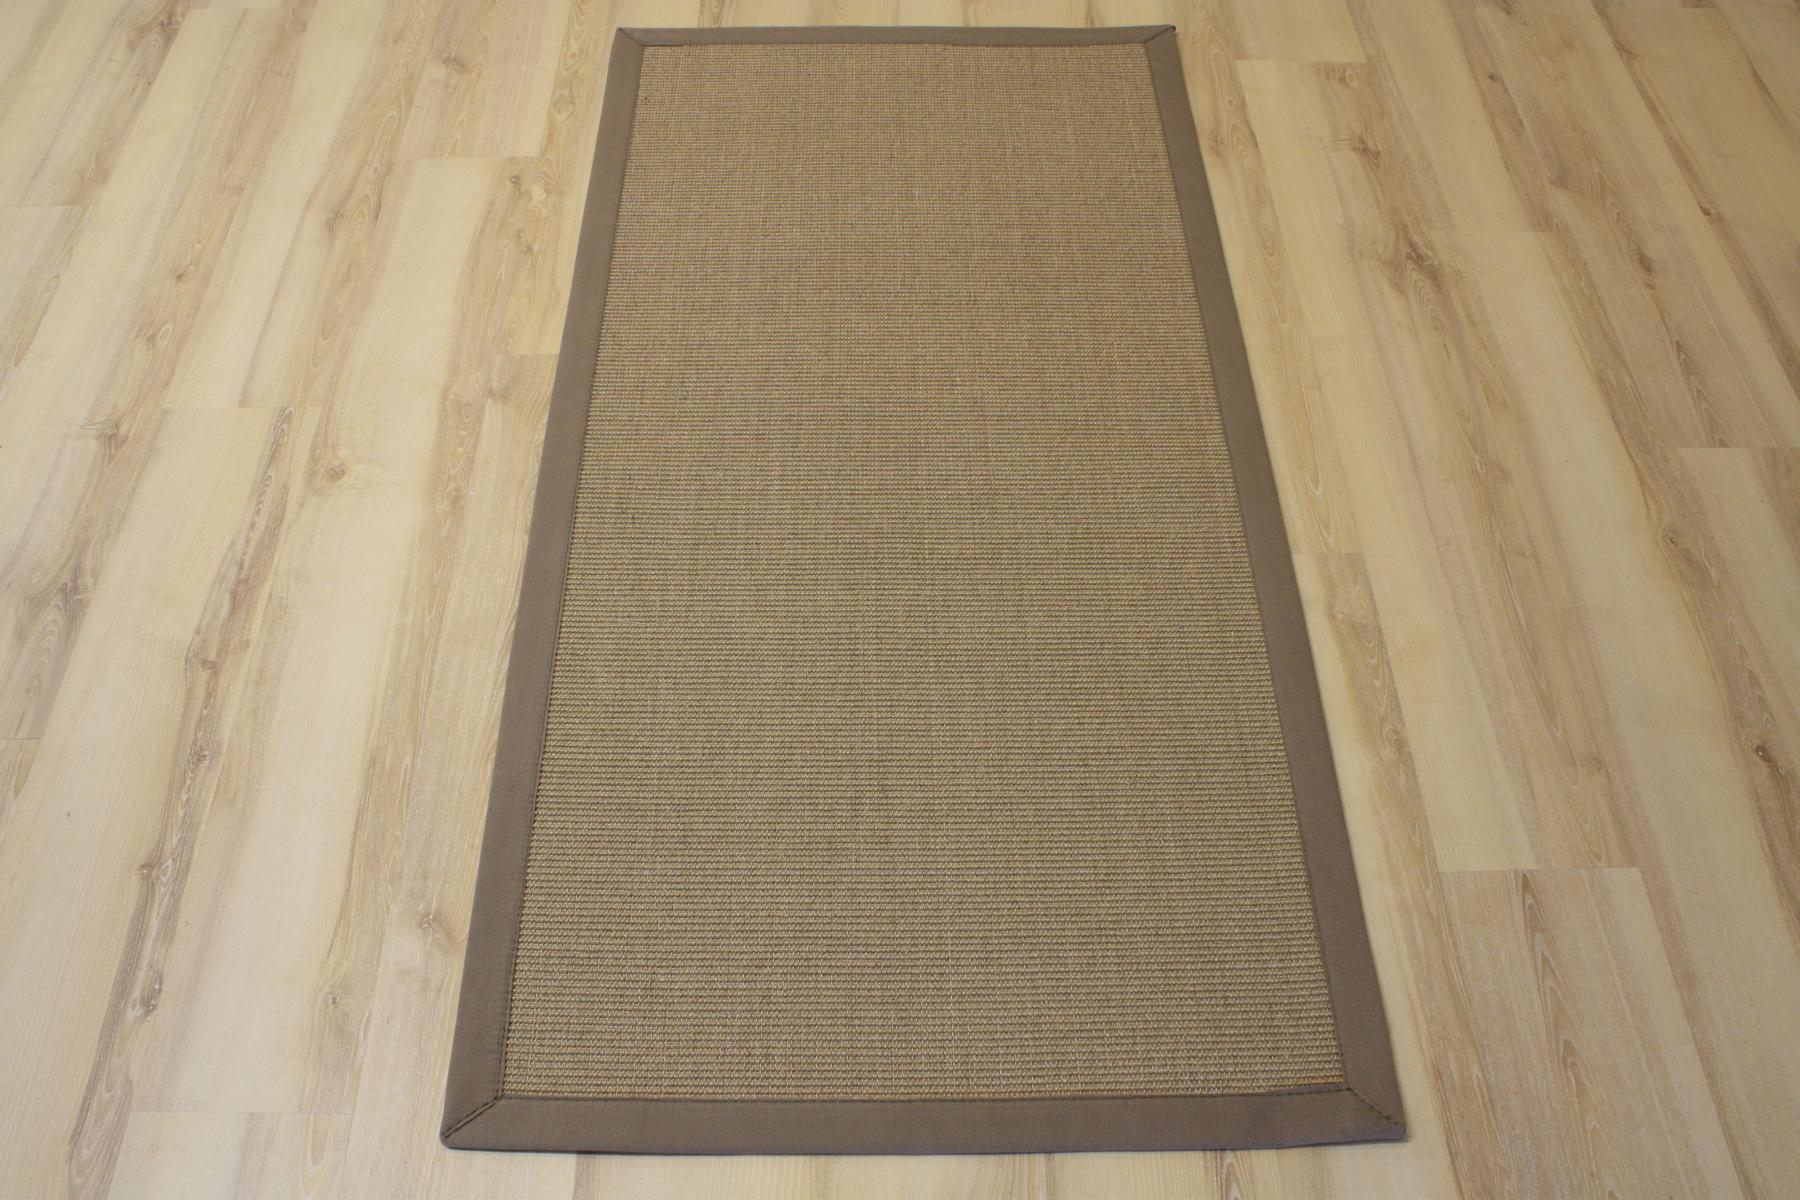 sisal tapis salvador avec bordure cr me pierre 250x350 cm 100 sisal ebay. Black Bedroom Furniture Sets. Home Design Ideas